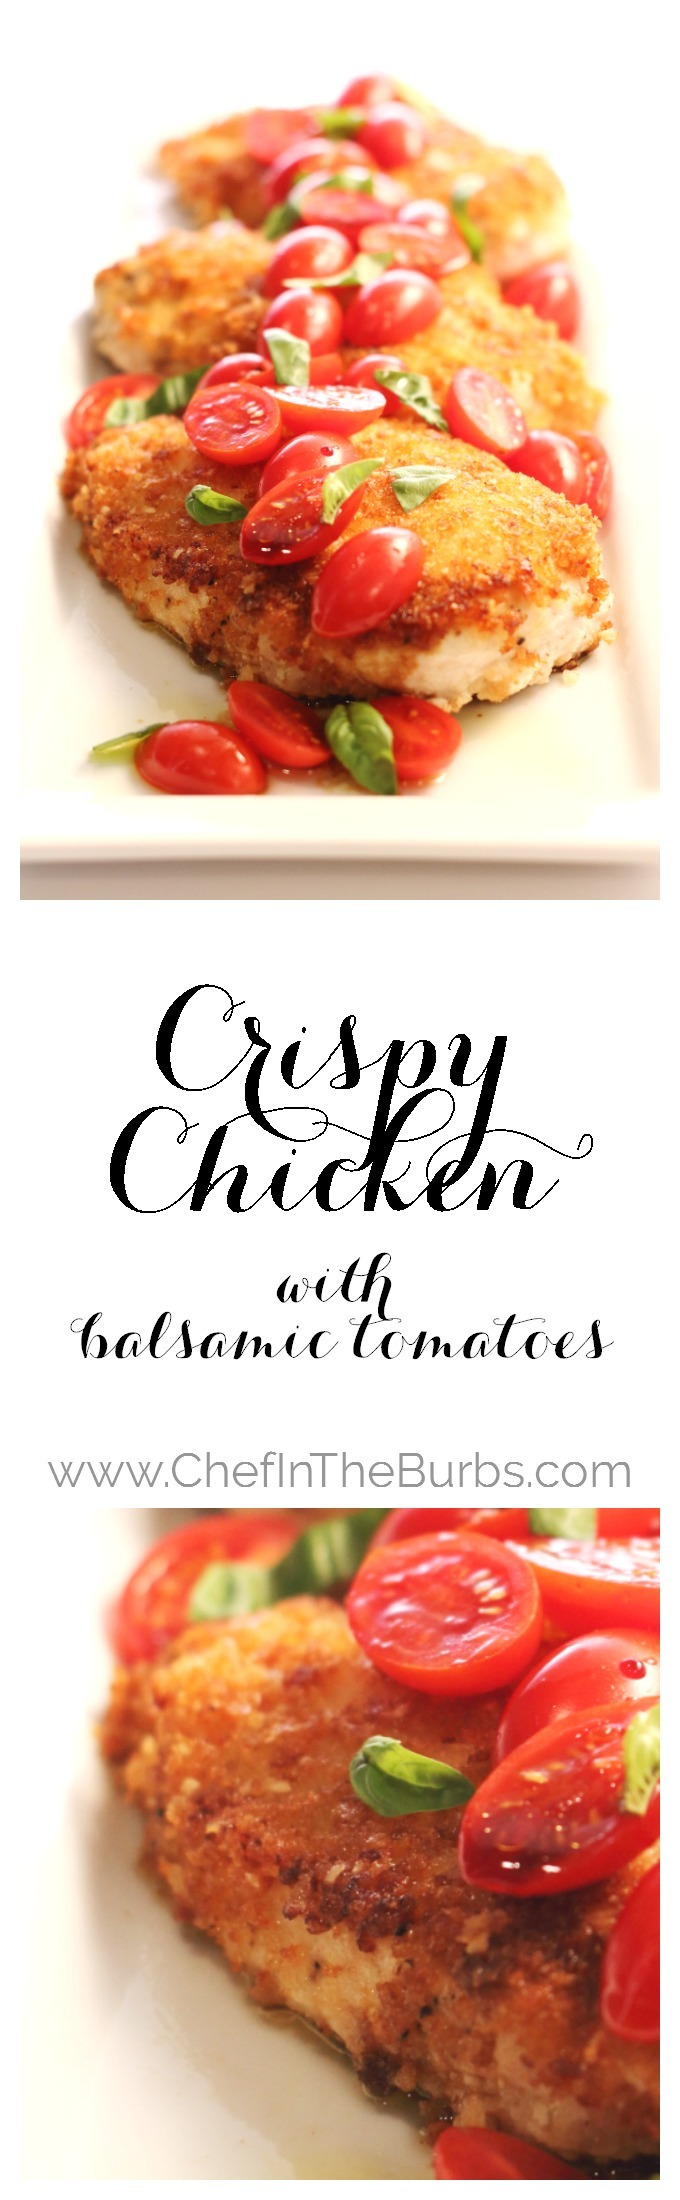 Crispy Chicken with Balsamic Tomatoes